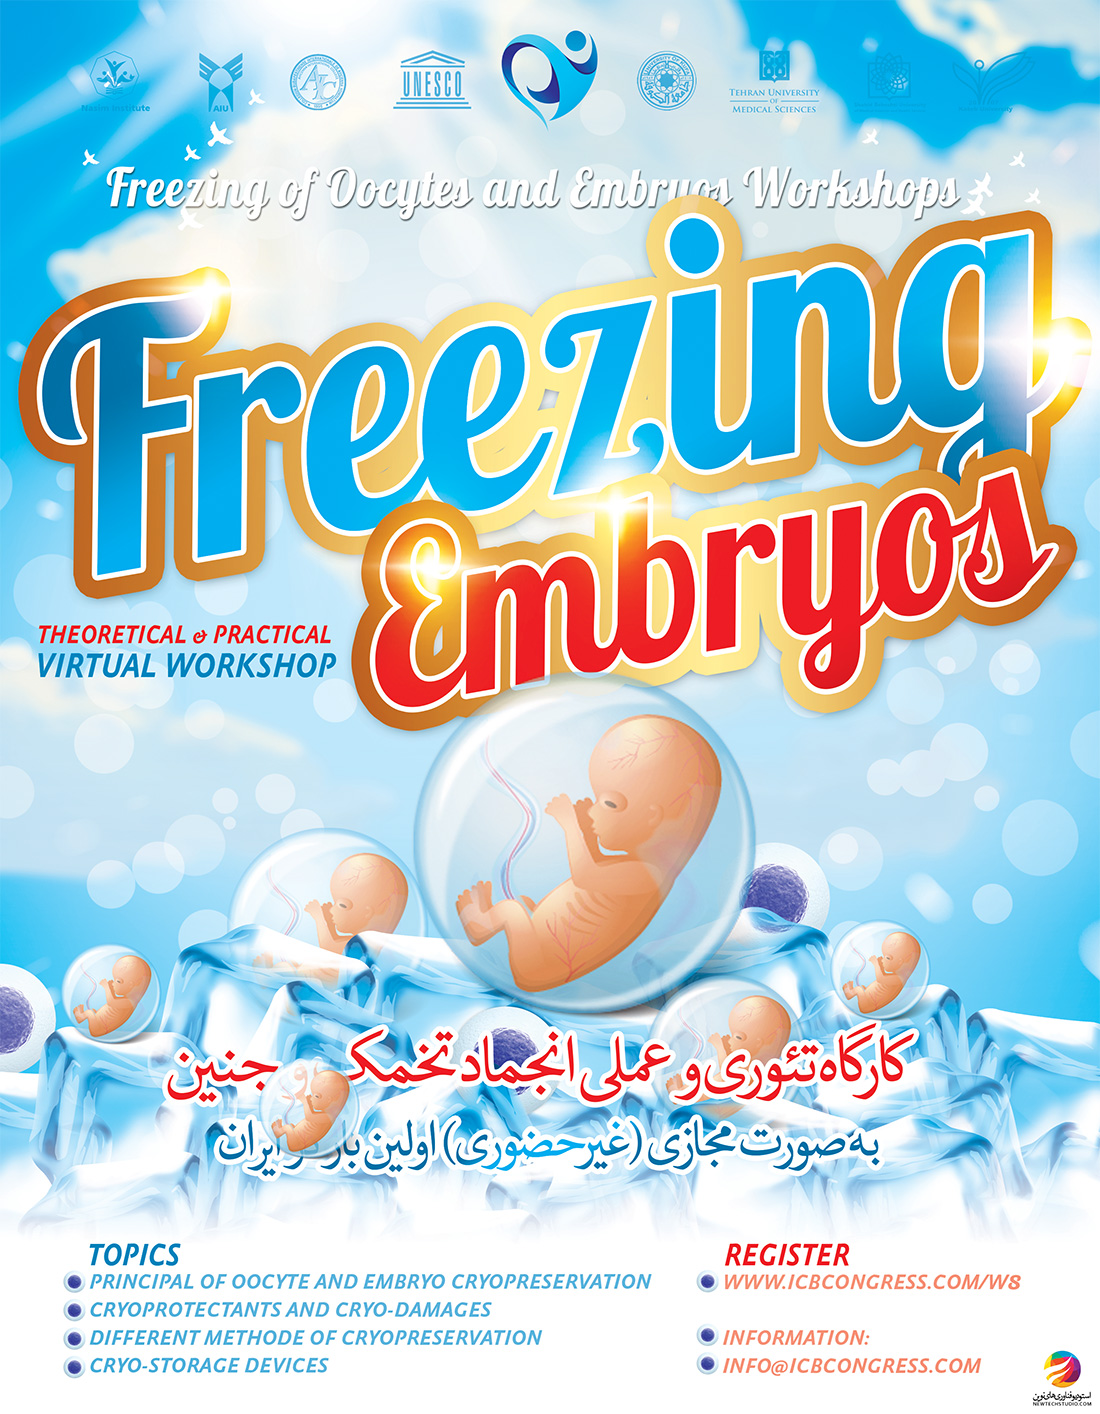 Freezing of Oocytes and Embryos Workshops